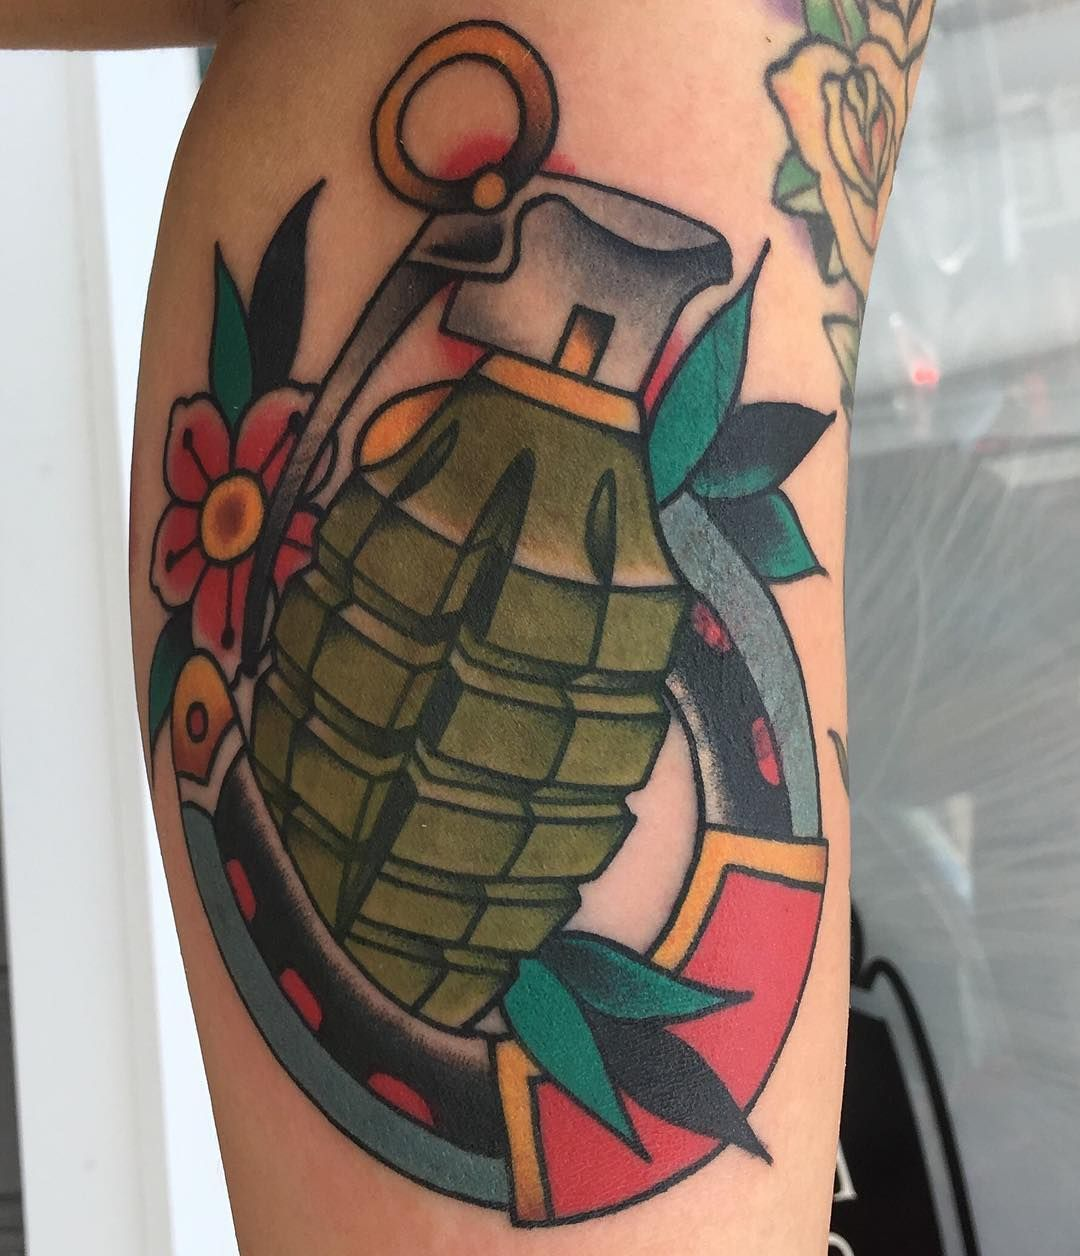 Forum on this topic: 50 Grenade Tattoo Designs For Men – , 50-grenade-tattoo-designs-for-men/